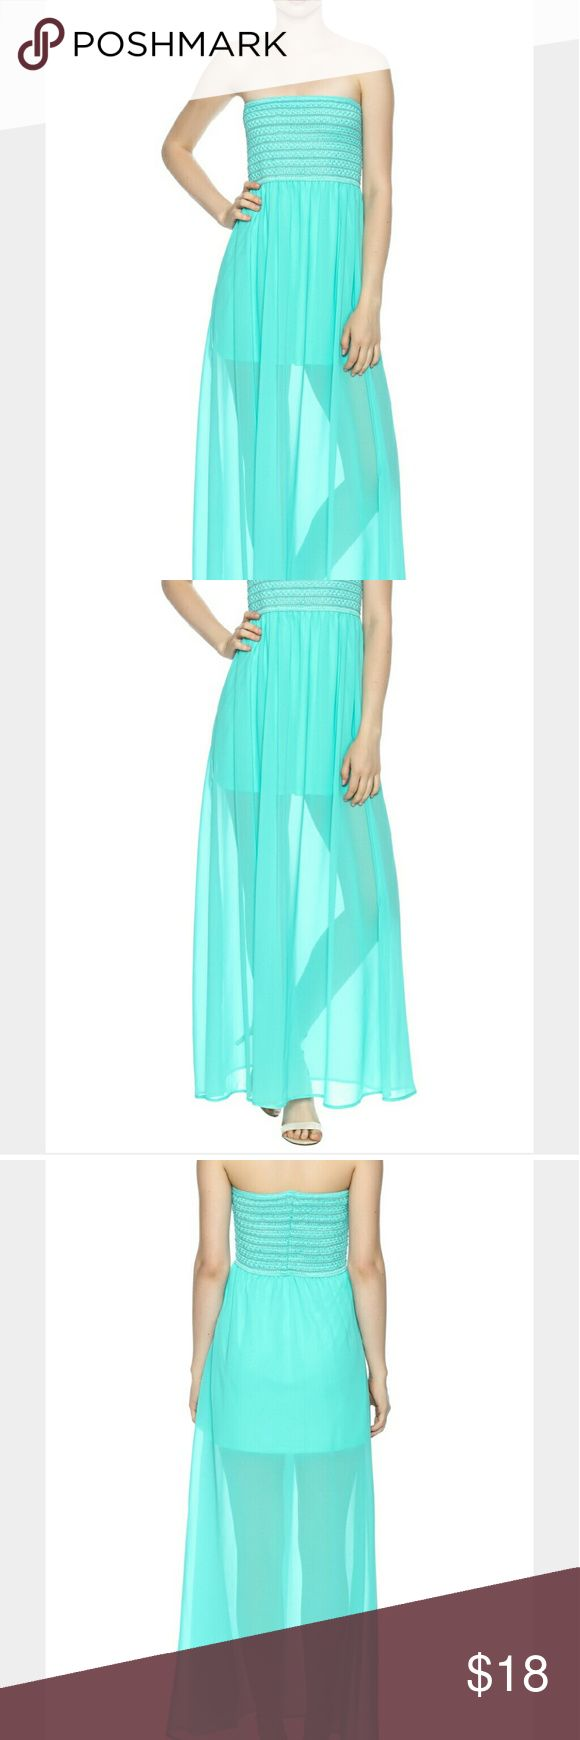 Chiffon strapless maxi dress Chiffon strapless maxi dress with elastic top and flowy chiffon skirt.  Knee length lining. love j Dresses Maxi